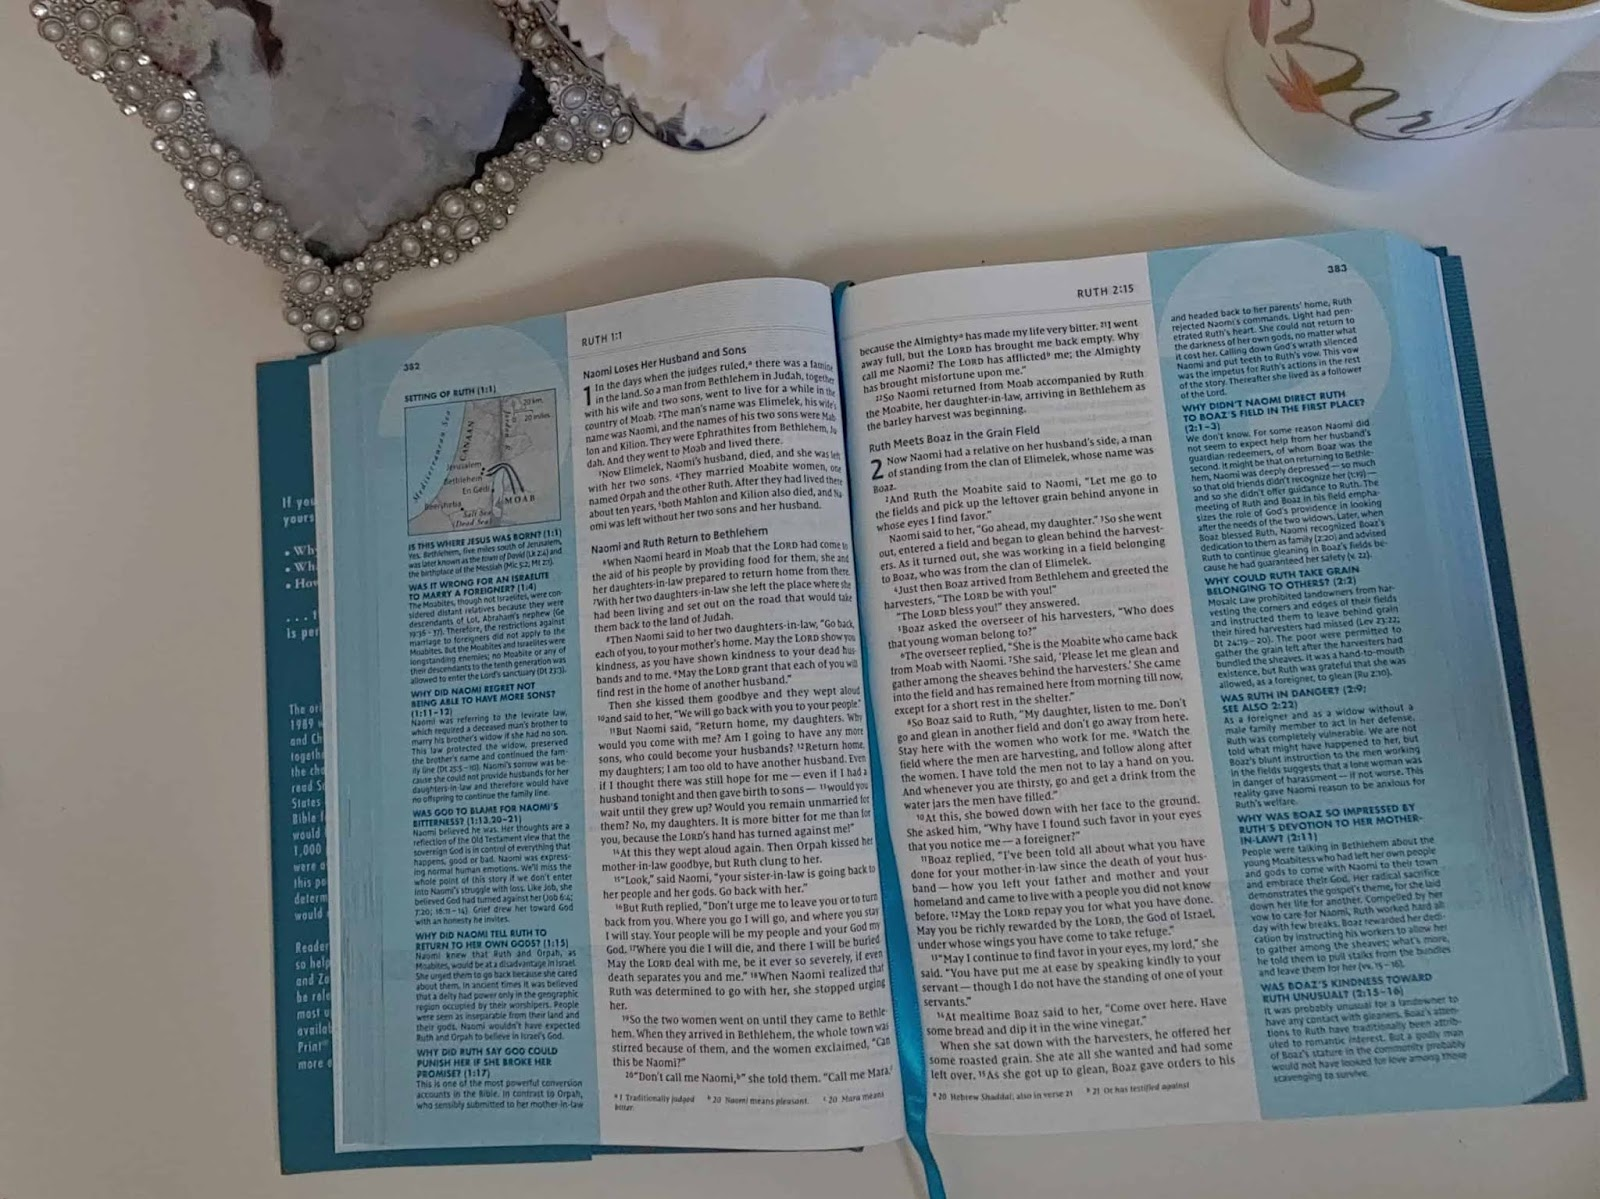 Bible Study   Are you a bible study beginner, trying to figure out how to dig deeper into the word. This review will help you decide if the NIV Quest Study Bible would be beneficial for your bible study routine. How To Study The Bible   dig into God's word   Bible study ideas   grow in your faith   Bible Study Methods   Spiritual growth #biblestudy #faithbuilding #spiritualgrowth